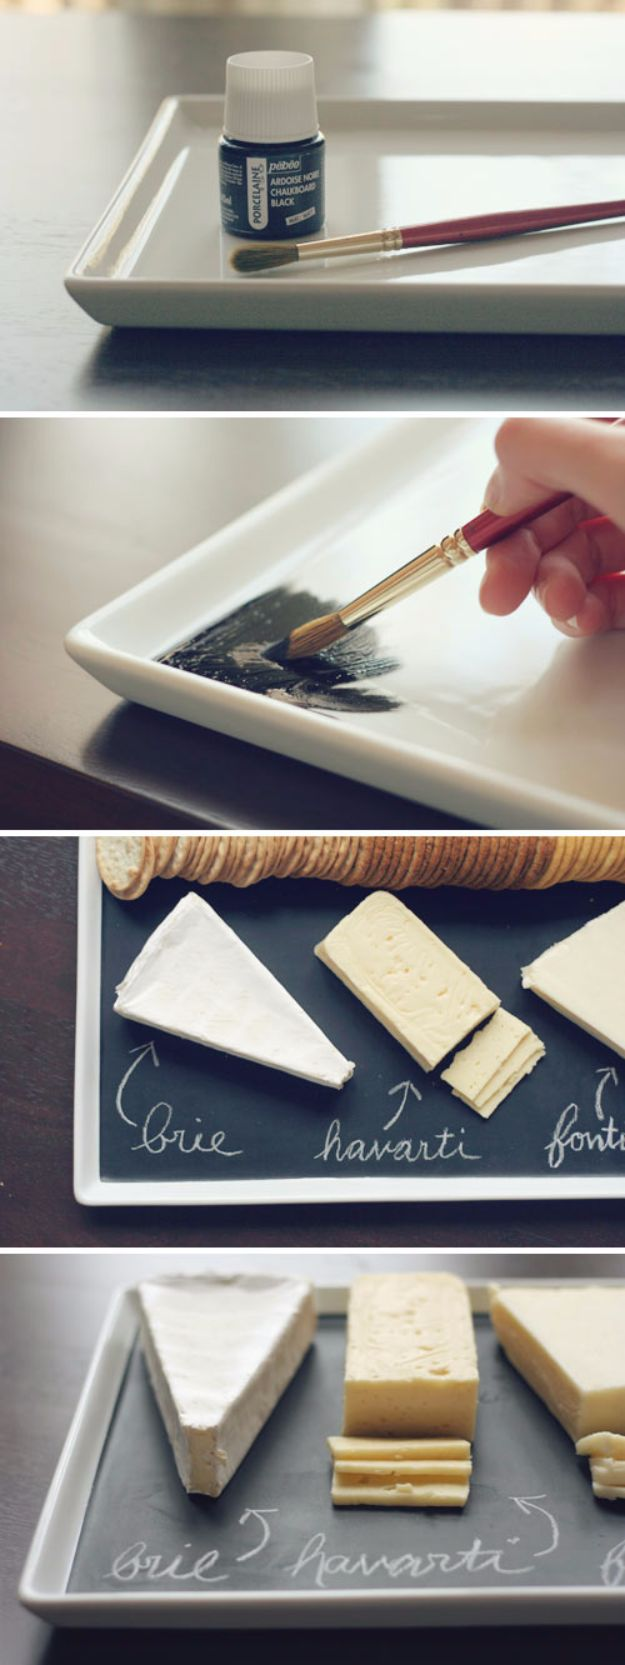 DIY Chalkboard Paint Ideas for Furniture Projects, Home Decor, Kitchen, Bedroom, Signs and Crafts for Teens. | Chalkboard Serving Platter